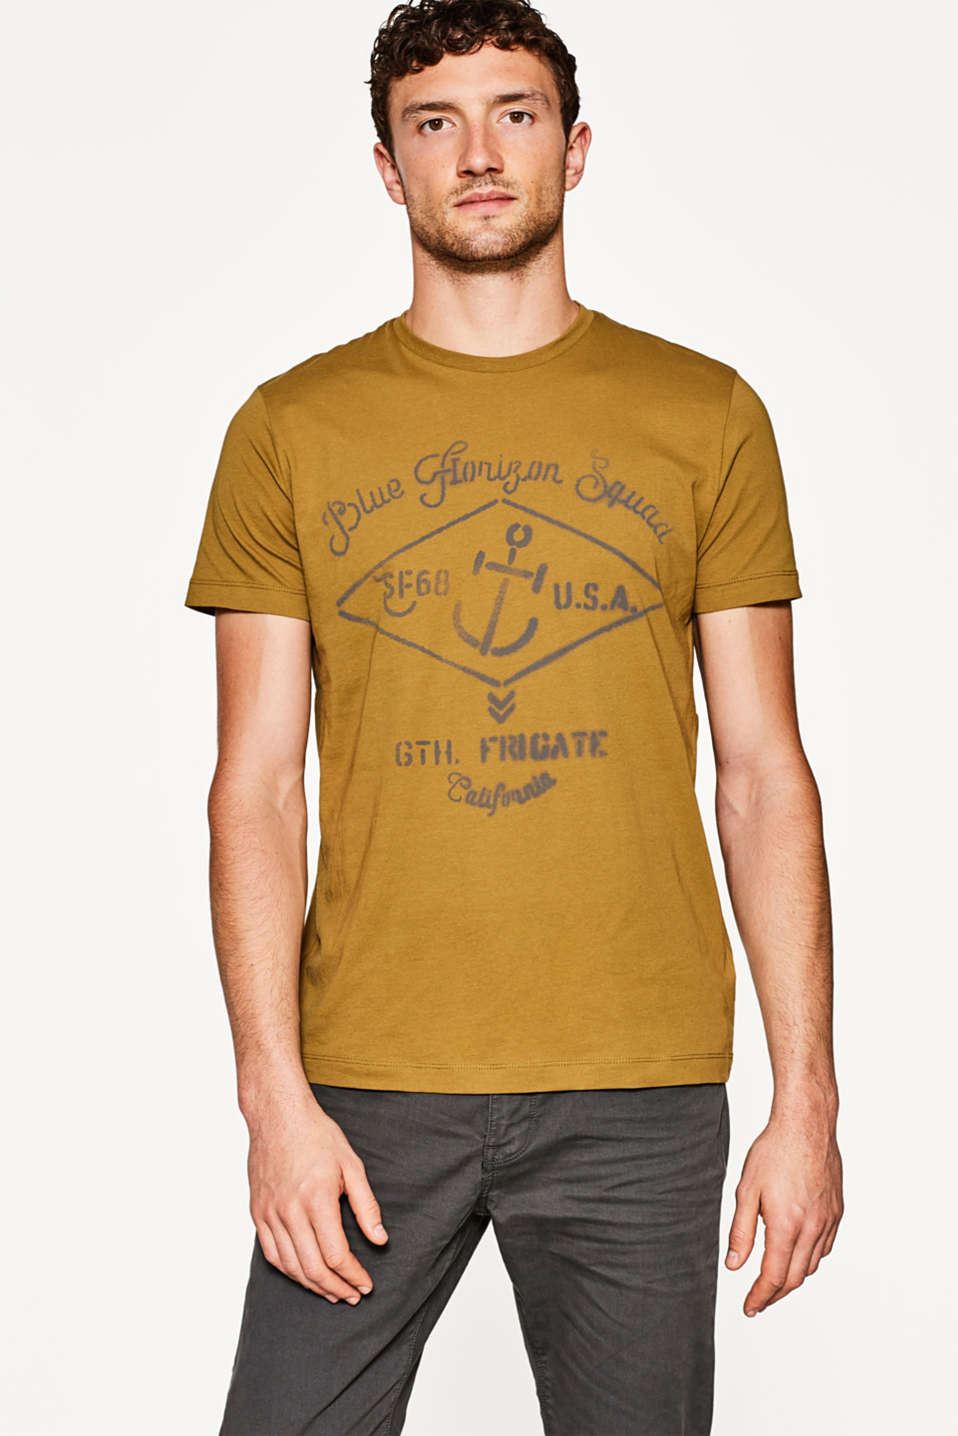 Esprit - Pure cotton jersey printed T-shirt